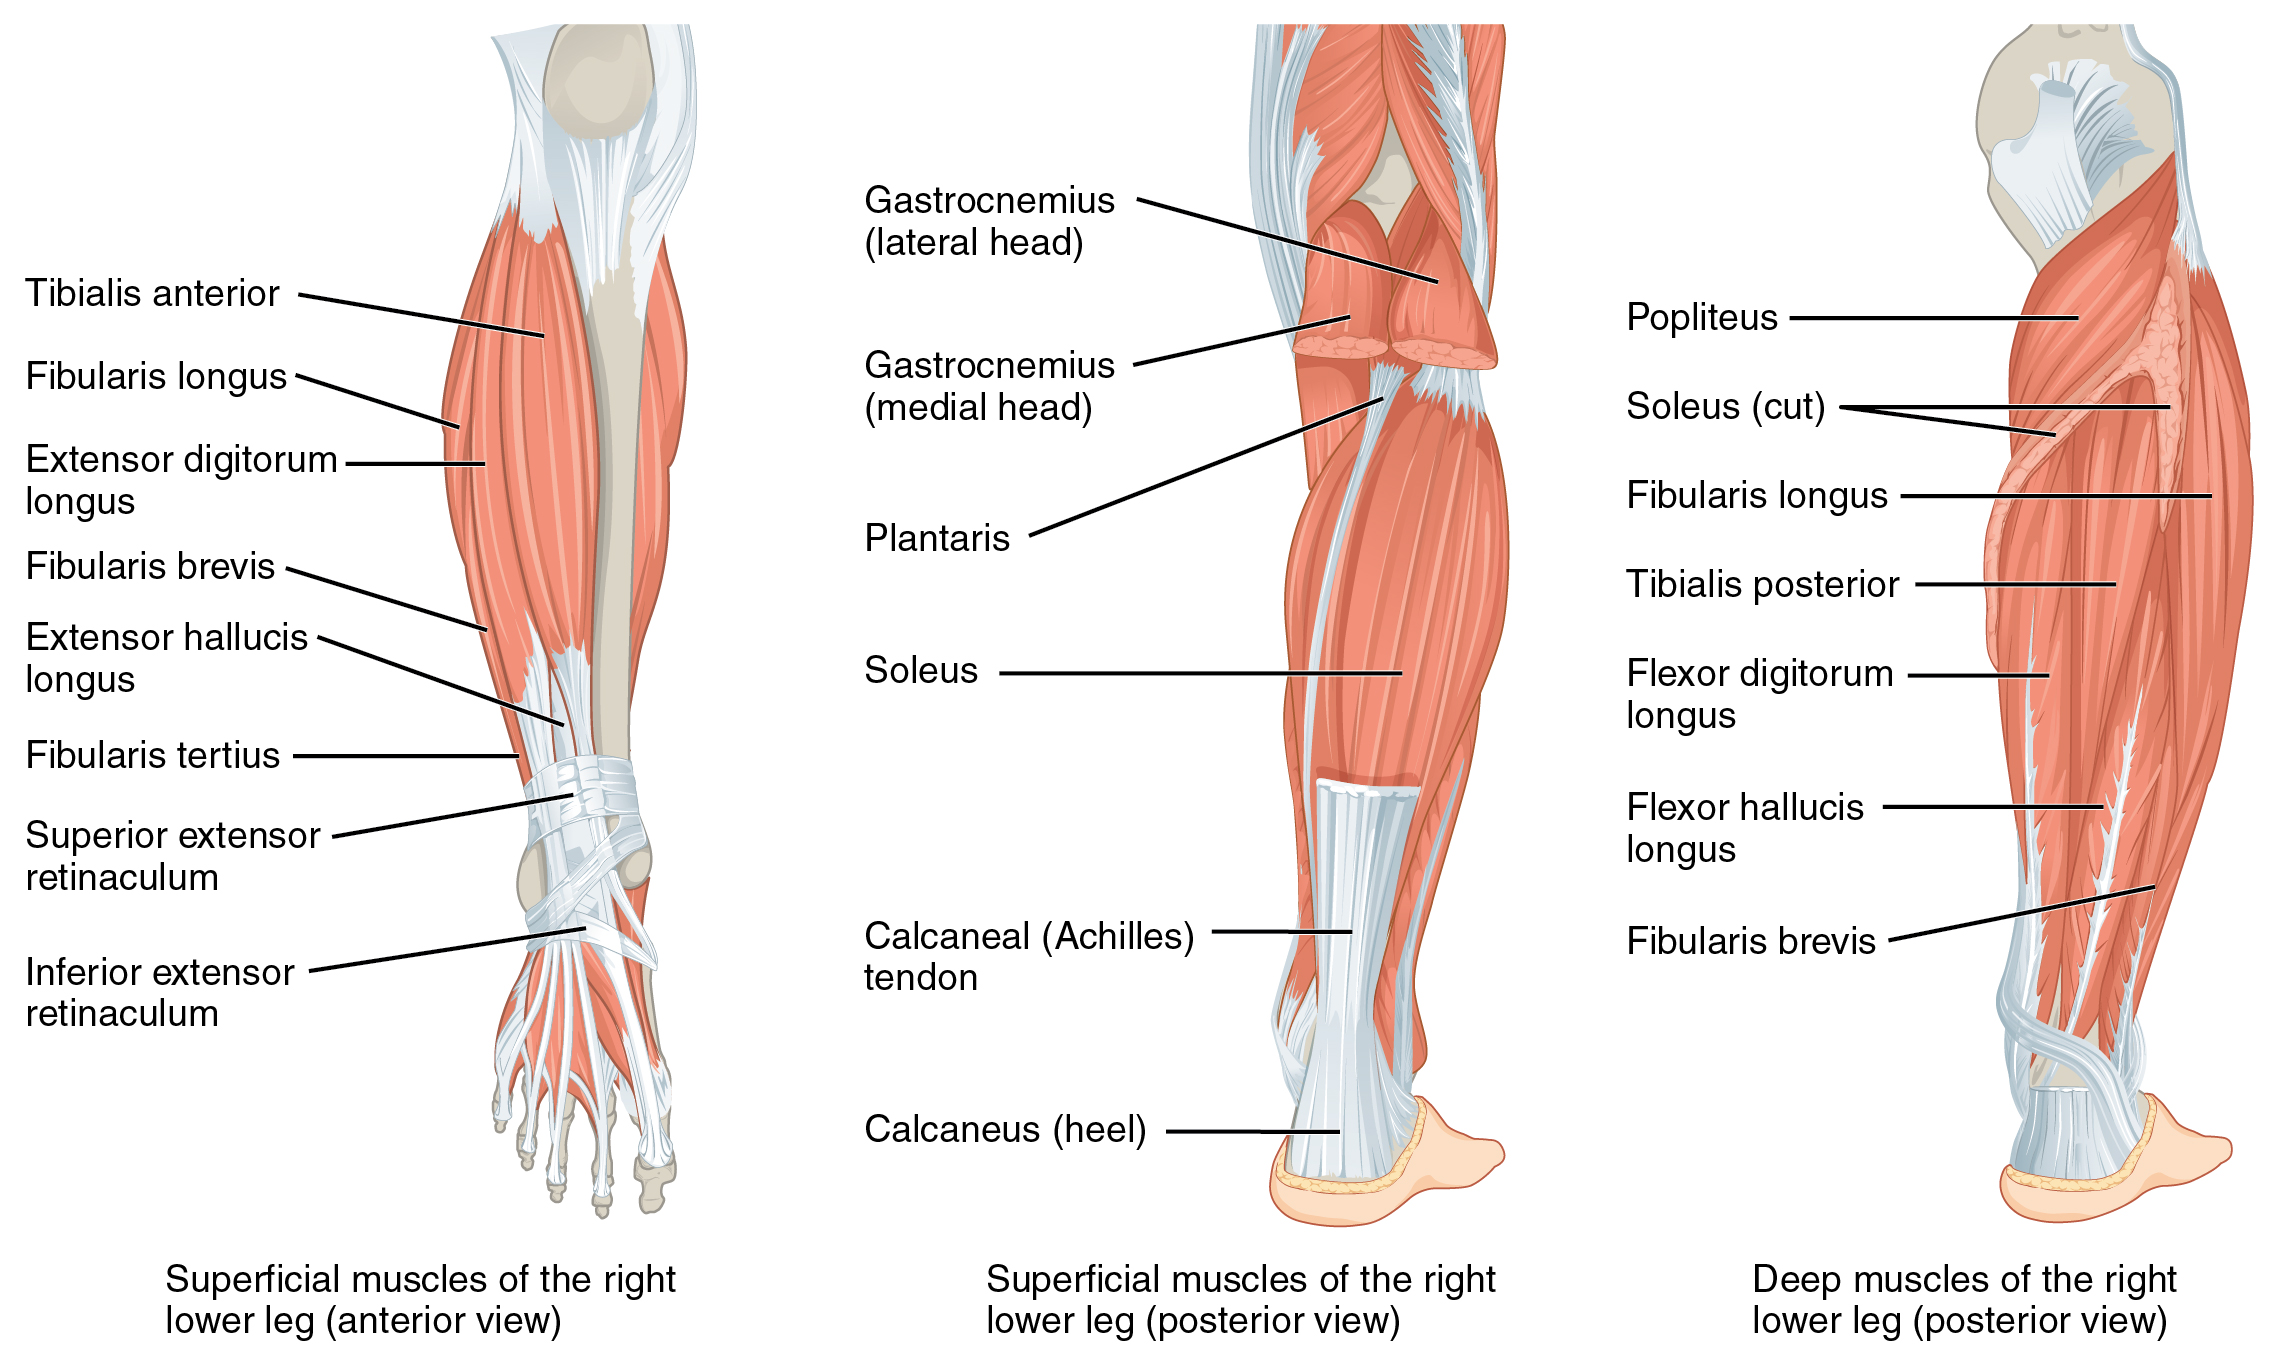 The left panel shows the superficial muscles that move the feet and the center panel shows the posterior view of the same muscles. The right panel shows the deep muscles of the right lower leg.